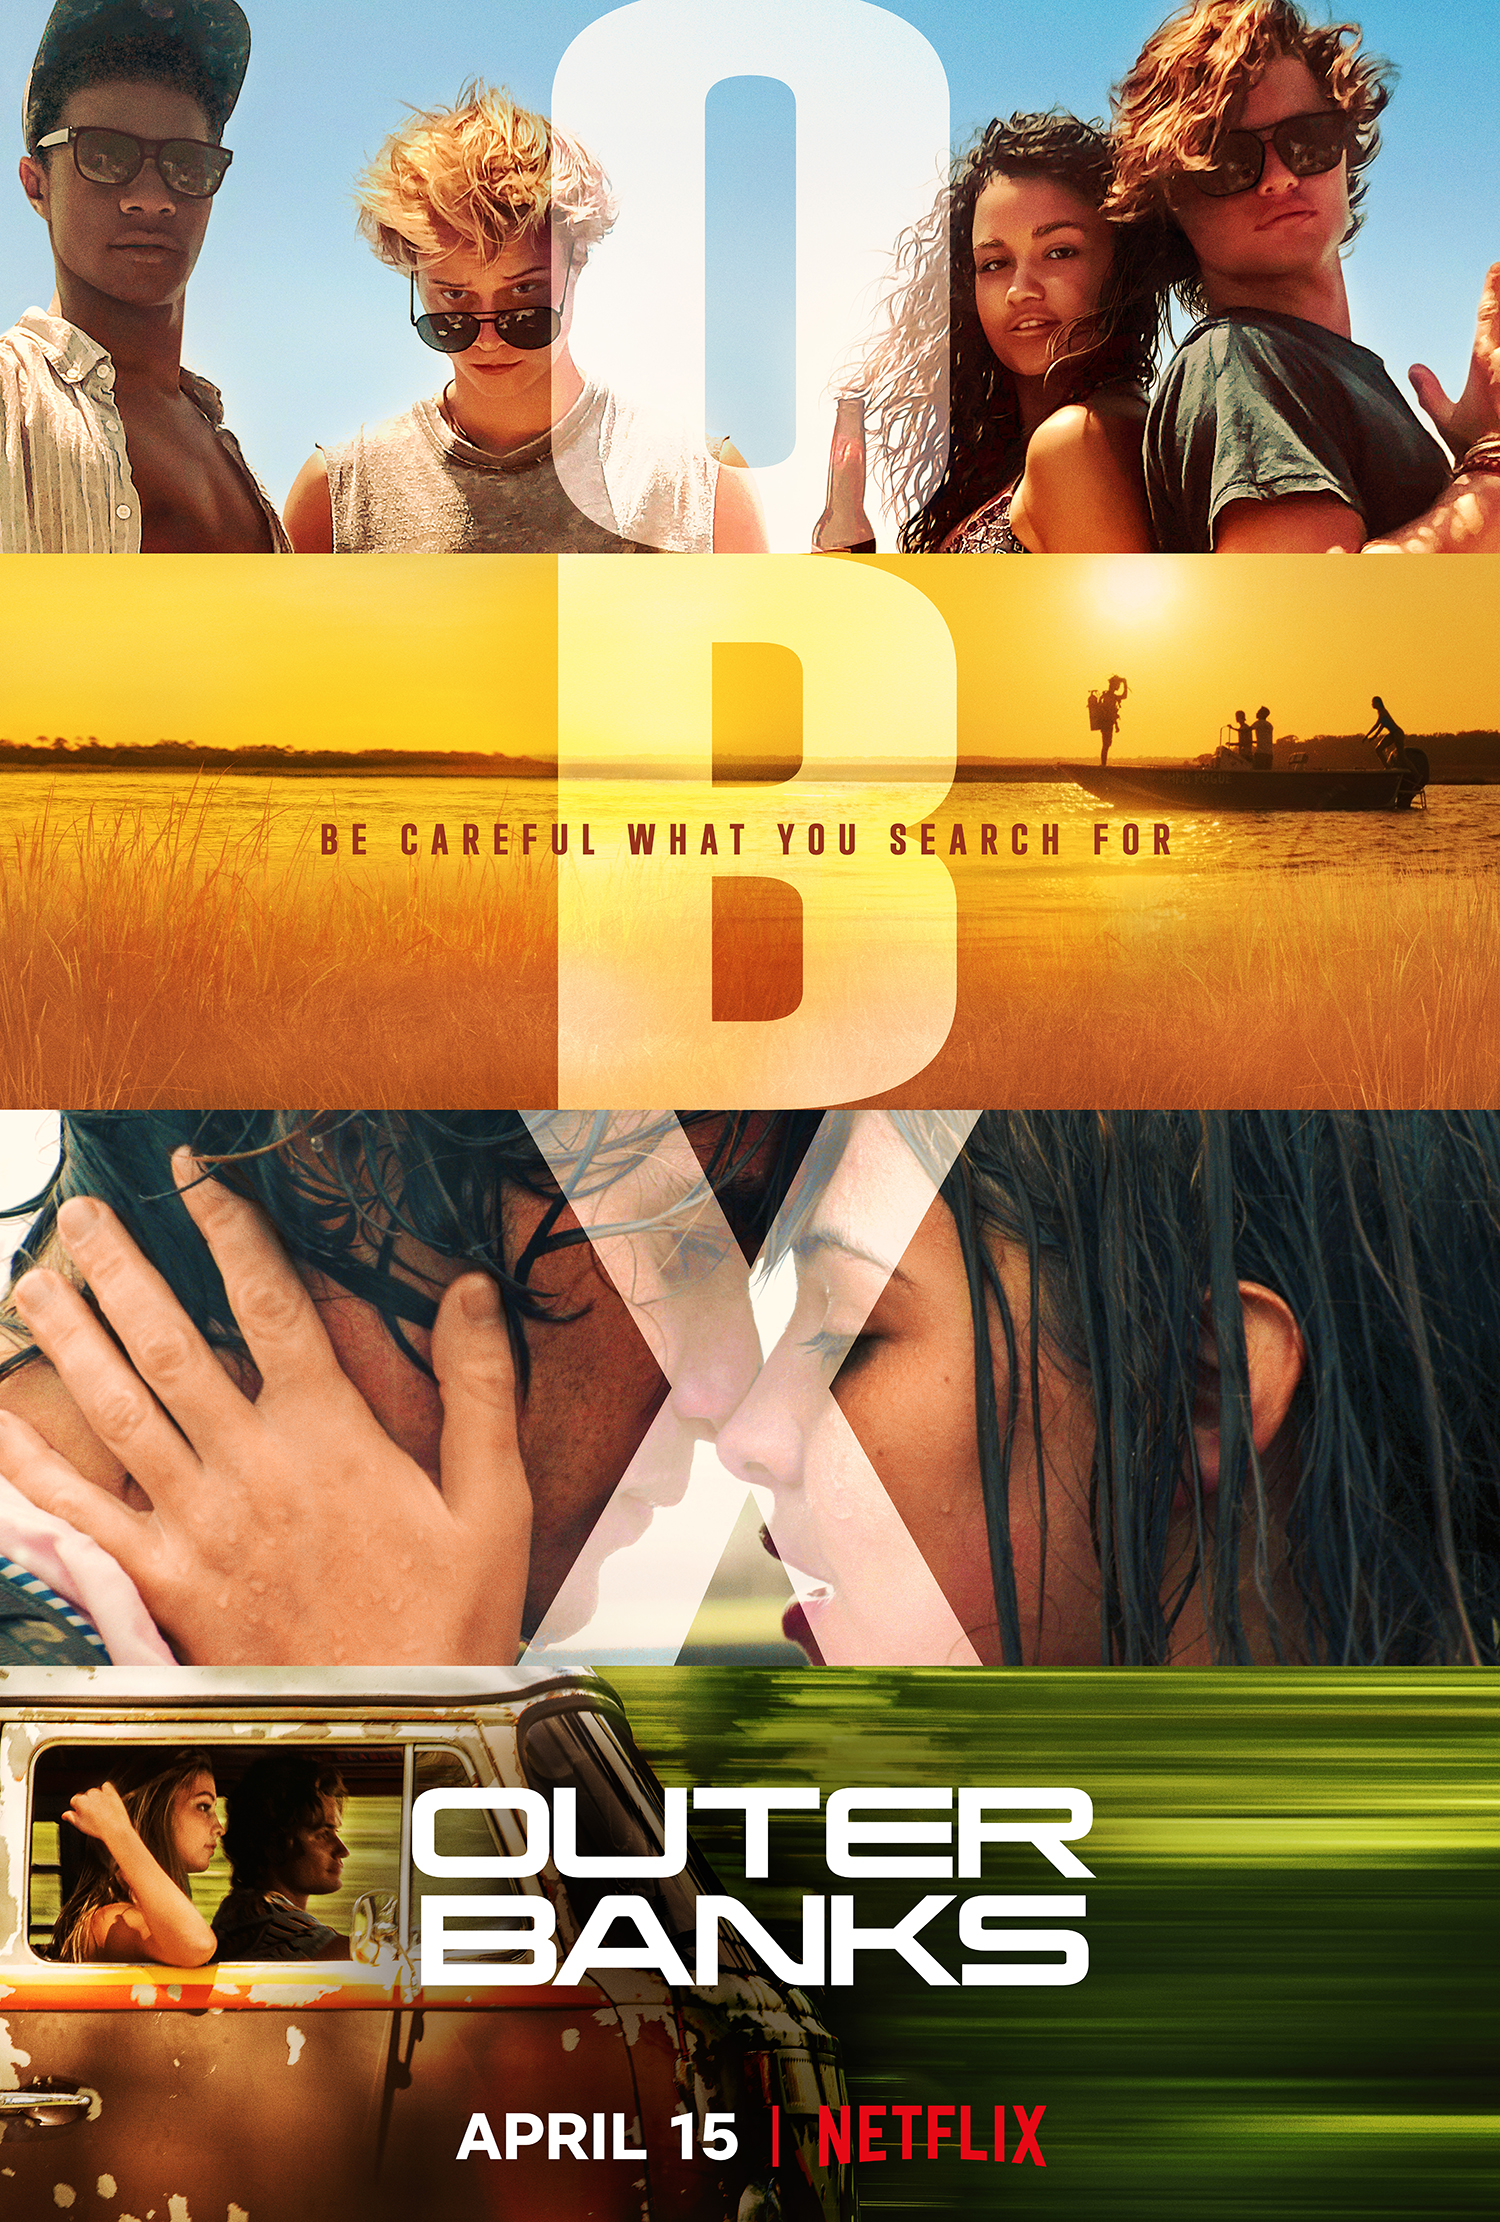 Outer Banks (TV Series 2020– ) - IMDb